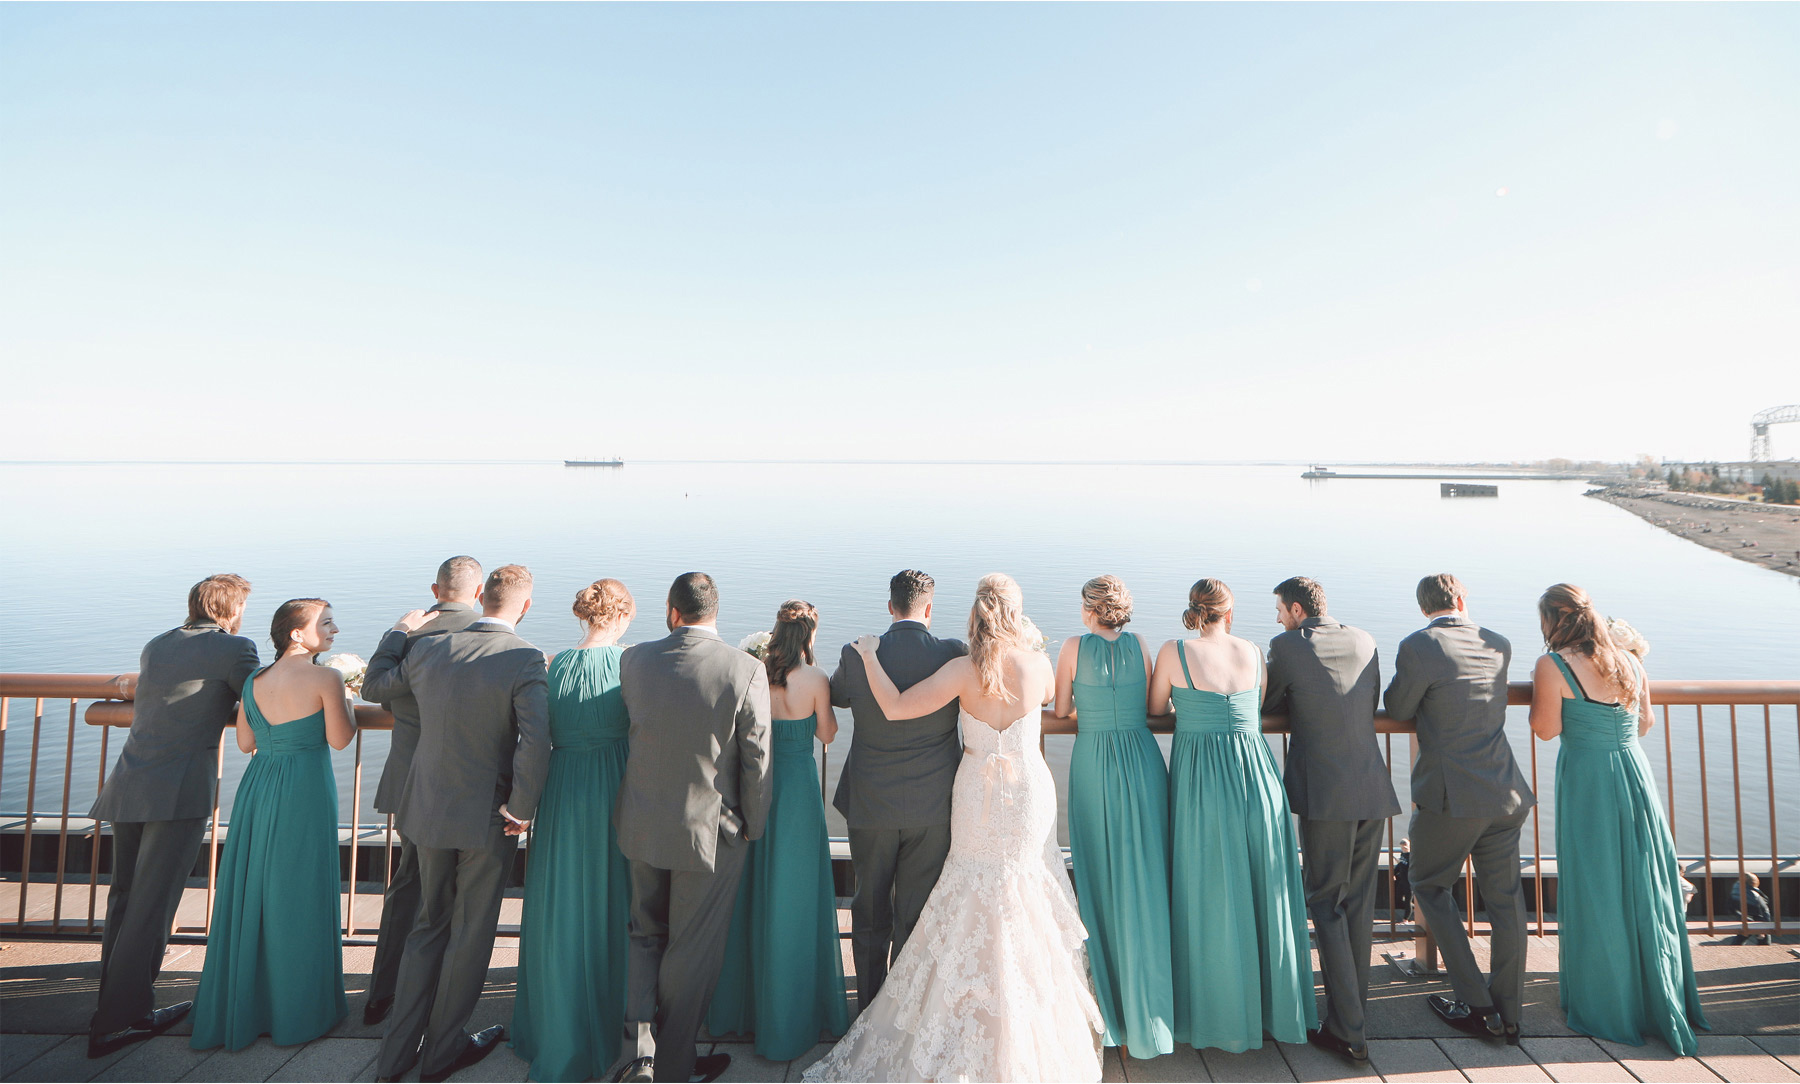 10-Duluth-Minnesota-Wedding-Photographer-by-Andrew-Vick-Photography-Fall-Autumn-Lake-Superior-Bride-Groom-Bridal-Party-Bridesmaids-Groomsmen-Vintage-Molly-and-Carson.jpg